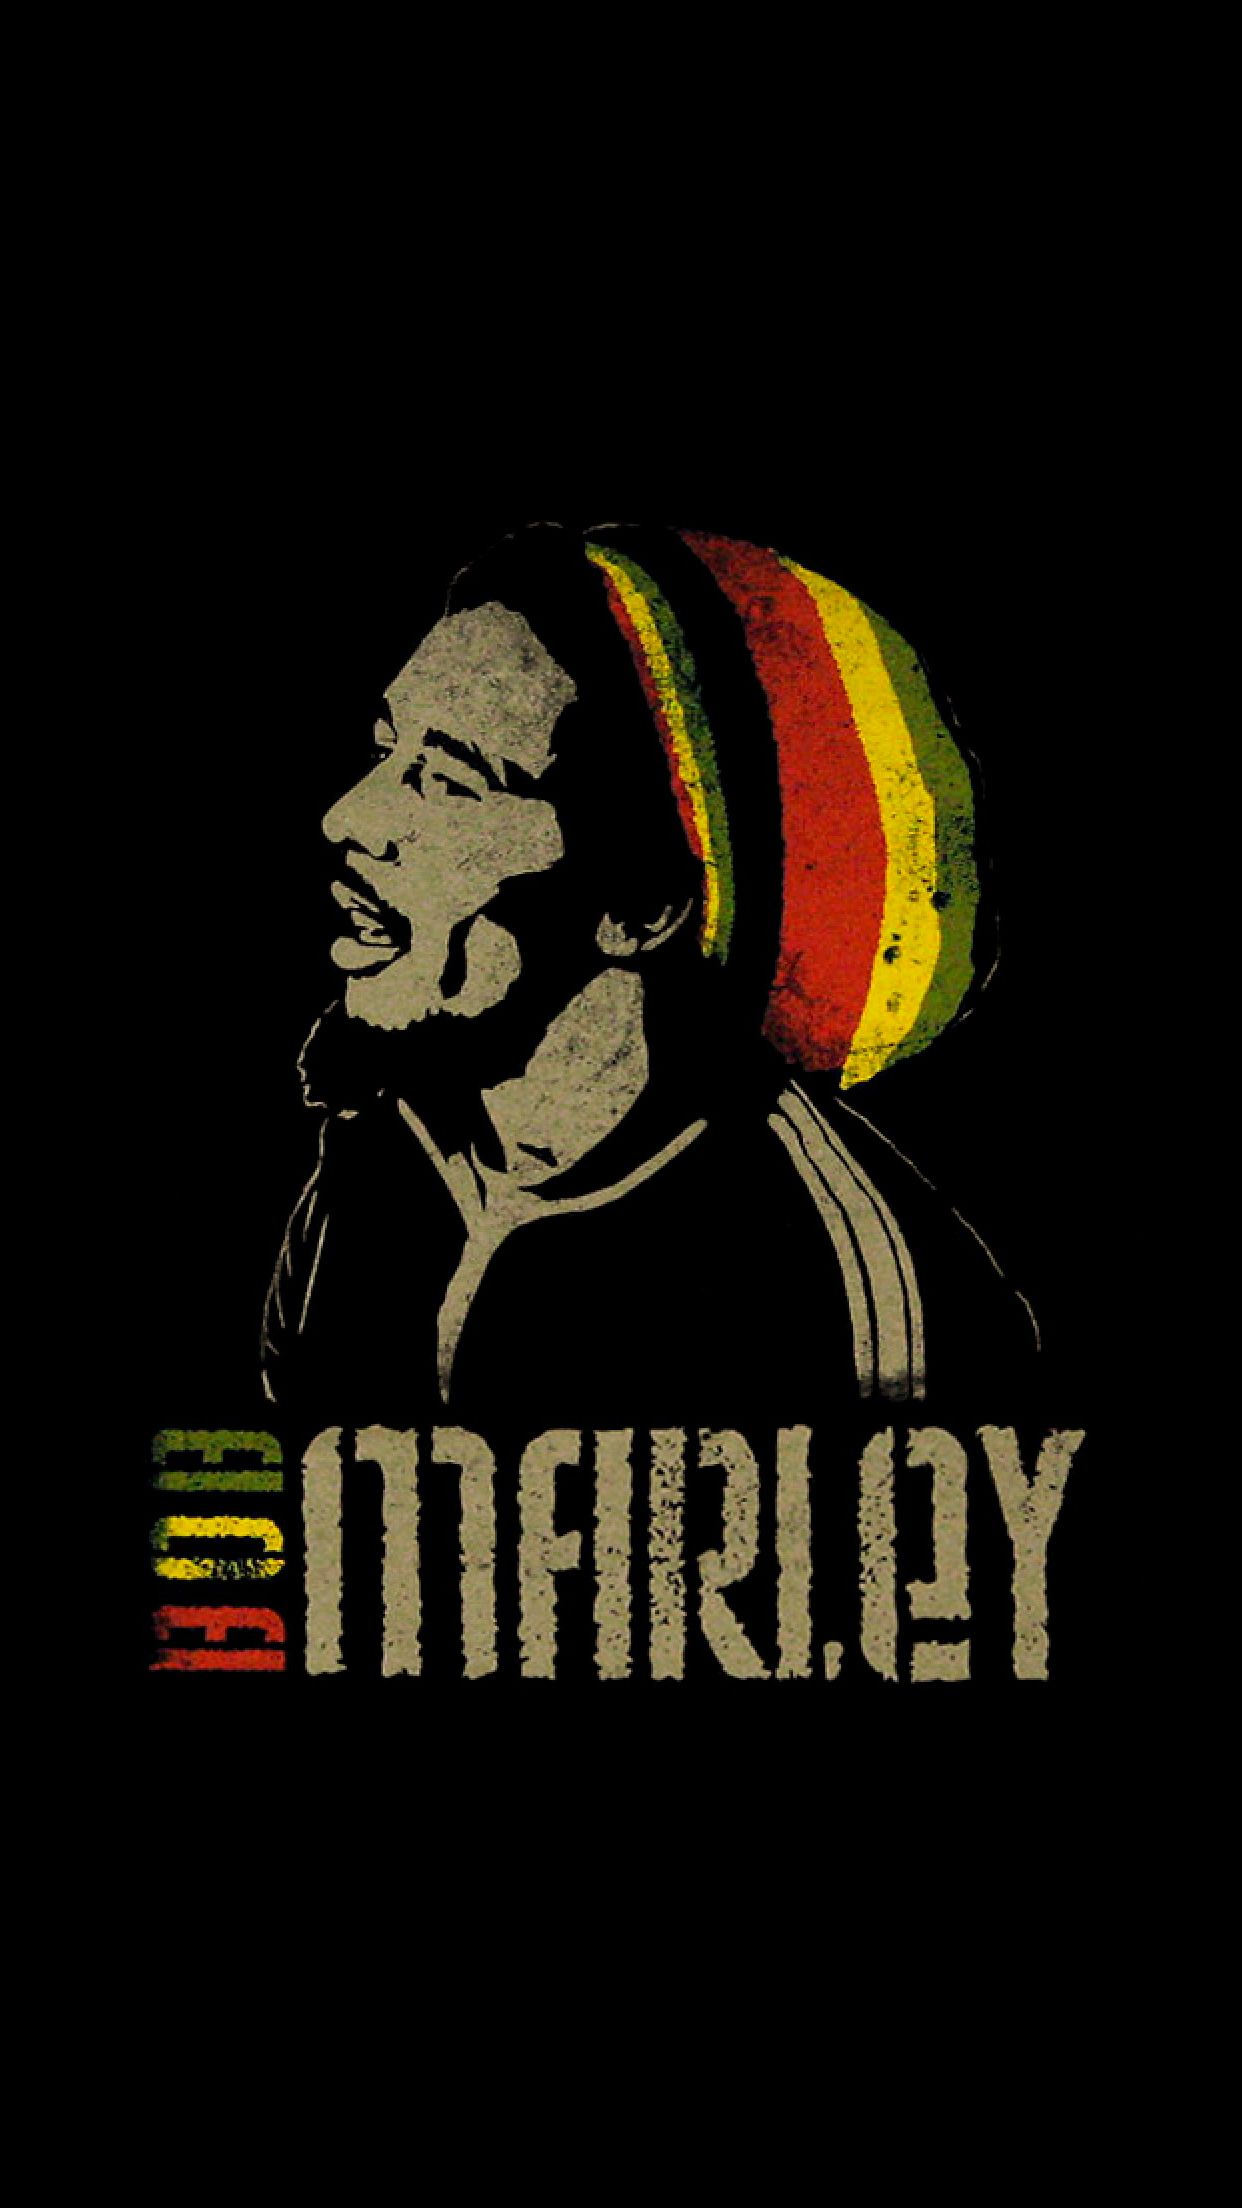 Bob Marley More Fantastic Posters Prints Pictures And Videos Of Bob Marley On Https De Pinterest Com Re Bob Marley Art Bob Marley Pictures Bob Marley